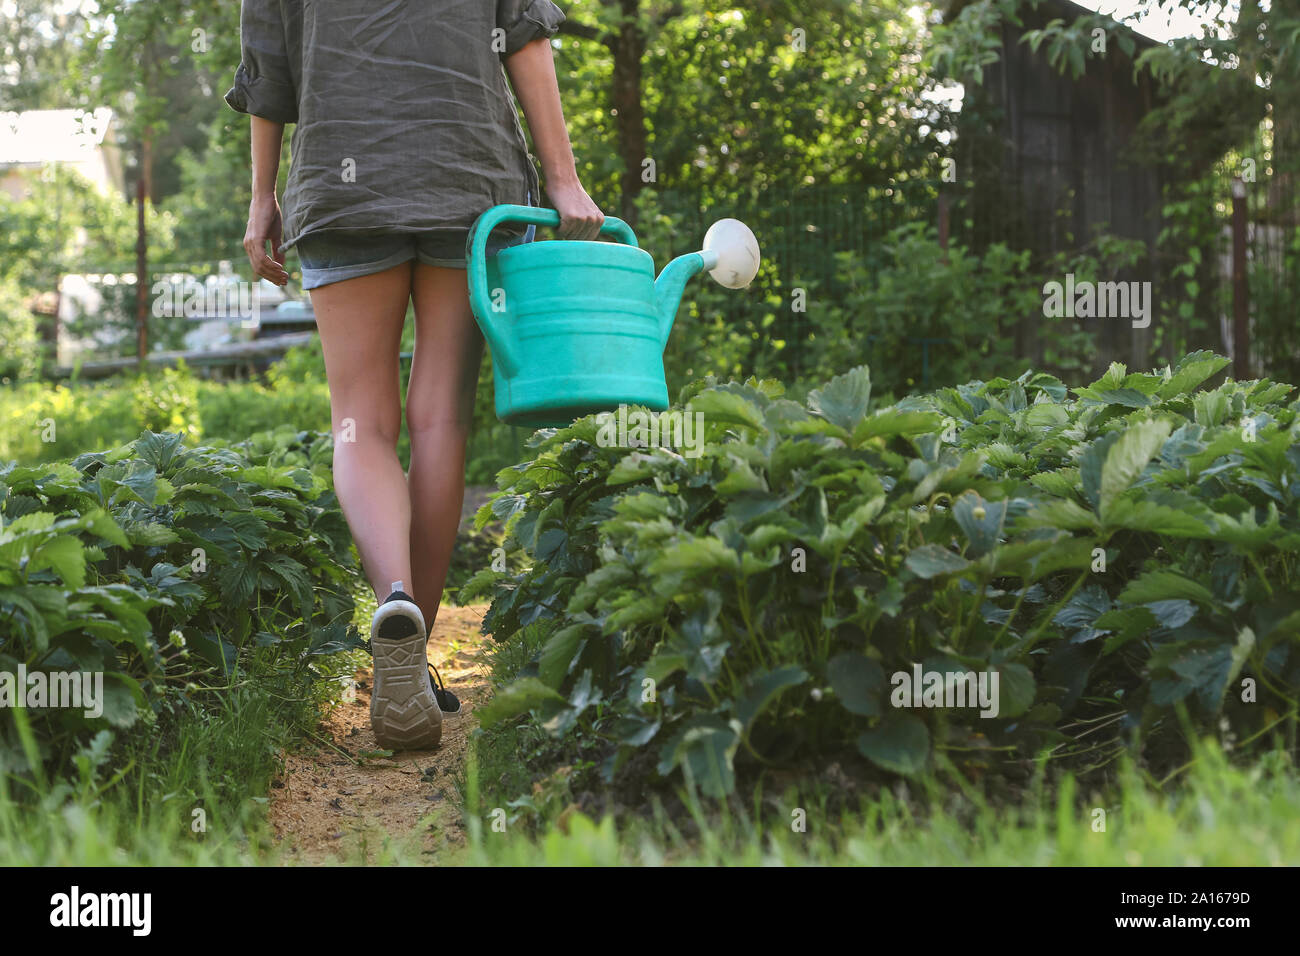 Close-up of woman with watering can walking in garden Stock Photo